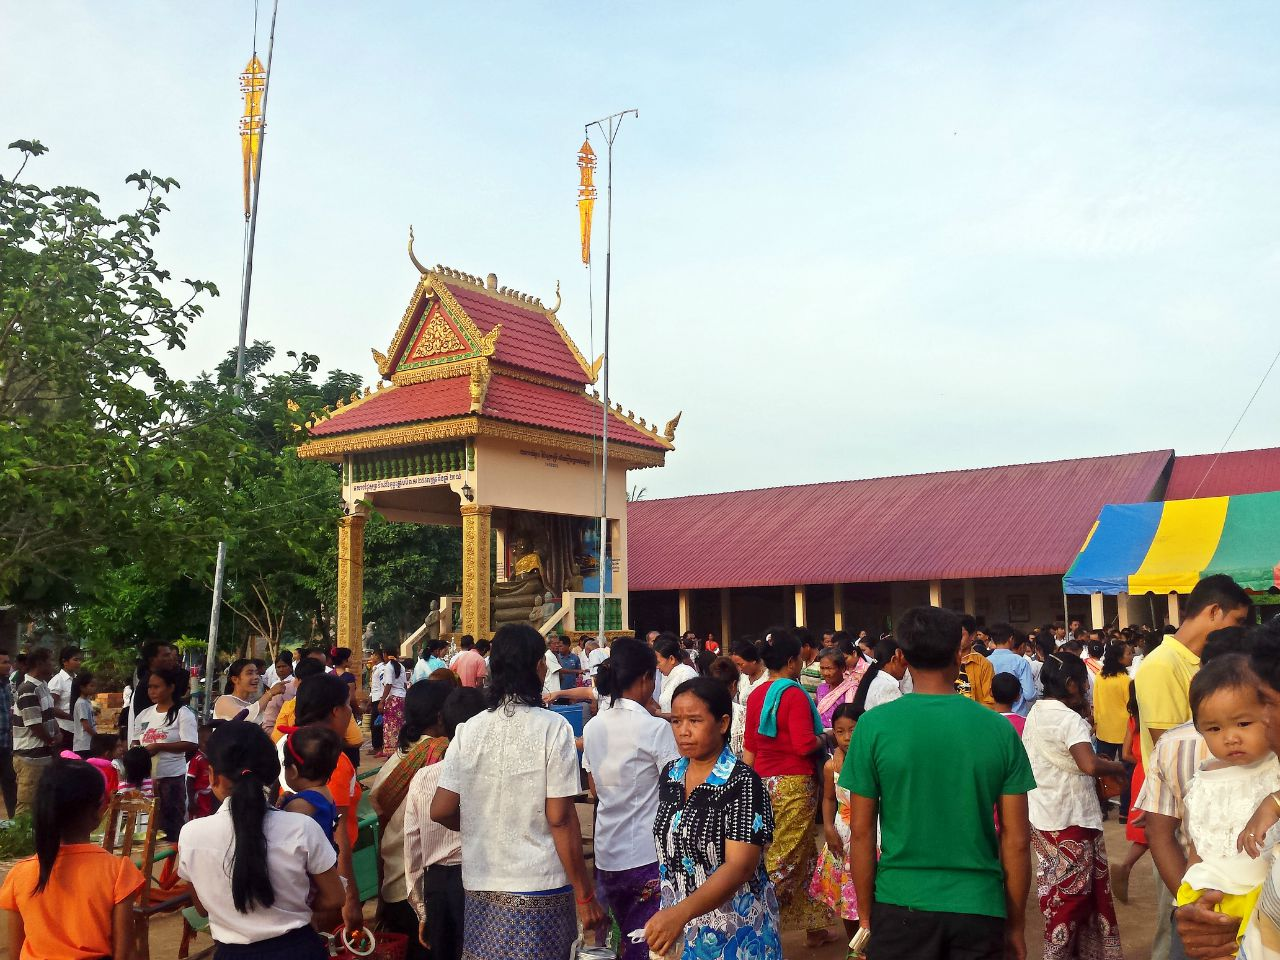 Banteay Meanchey Province Health Center Water Project – Cambodia